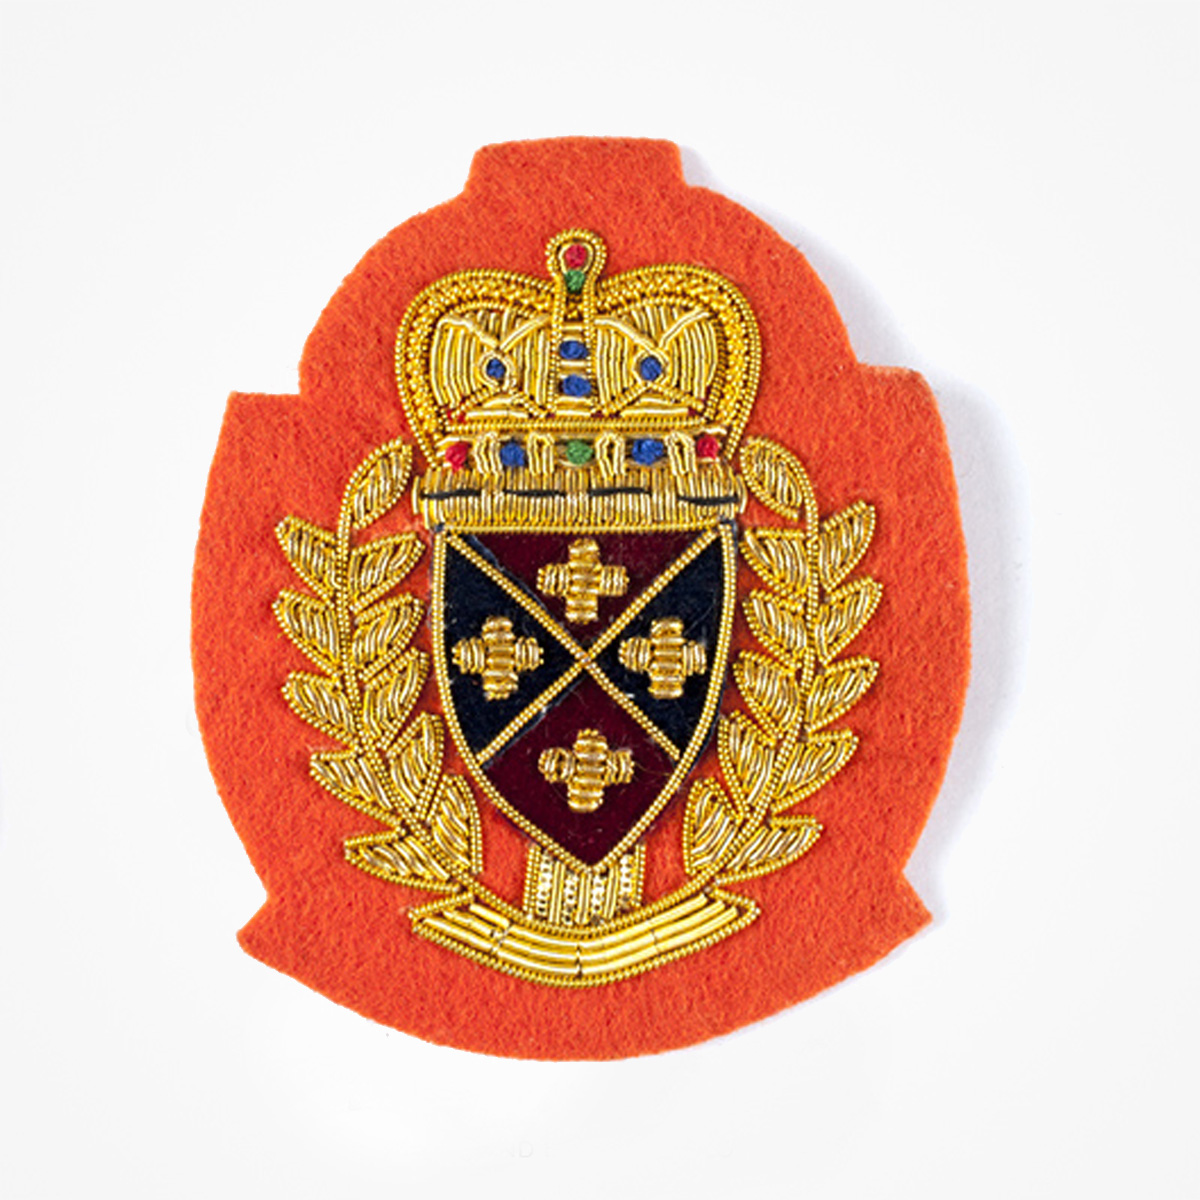 QG Gold Bullion wire Blazer Pocket Crest Patch on orange felt - Fashionable 3D embroidered look Made by skilled artisans Bullion wire and silk thread hand Stitched on Black color Felt Available in gold and silver colors Size = 72 mm height 60 mm width sewon backing: Perfect for caps, sports jacket, leather jackets, blazer coat, Blazer Pocket, shirts uniforms, Accessories and many More Pin backing: easy to removable 5